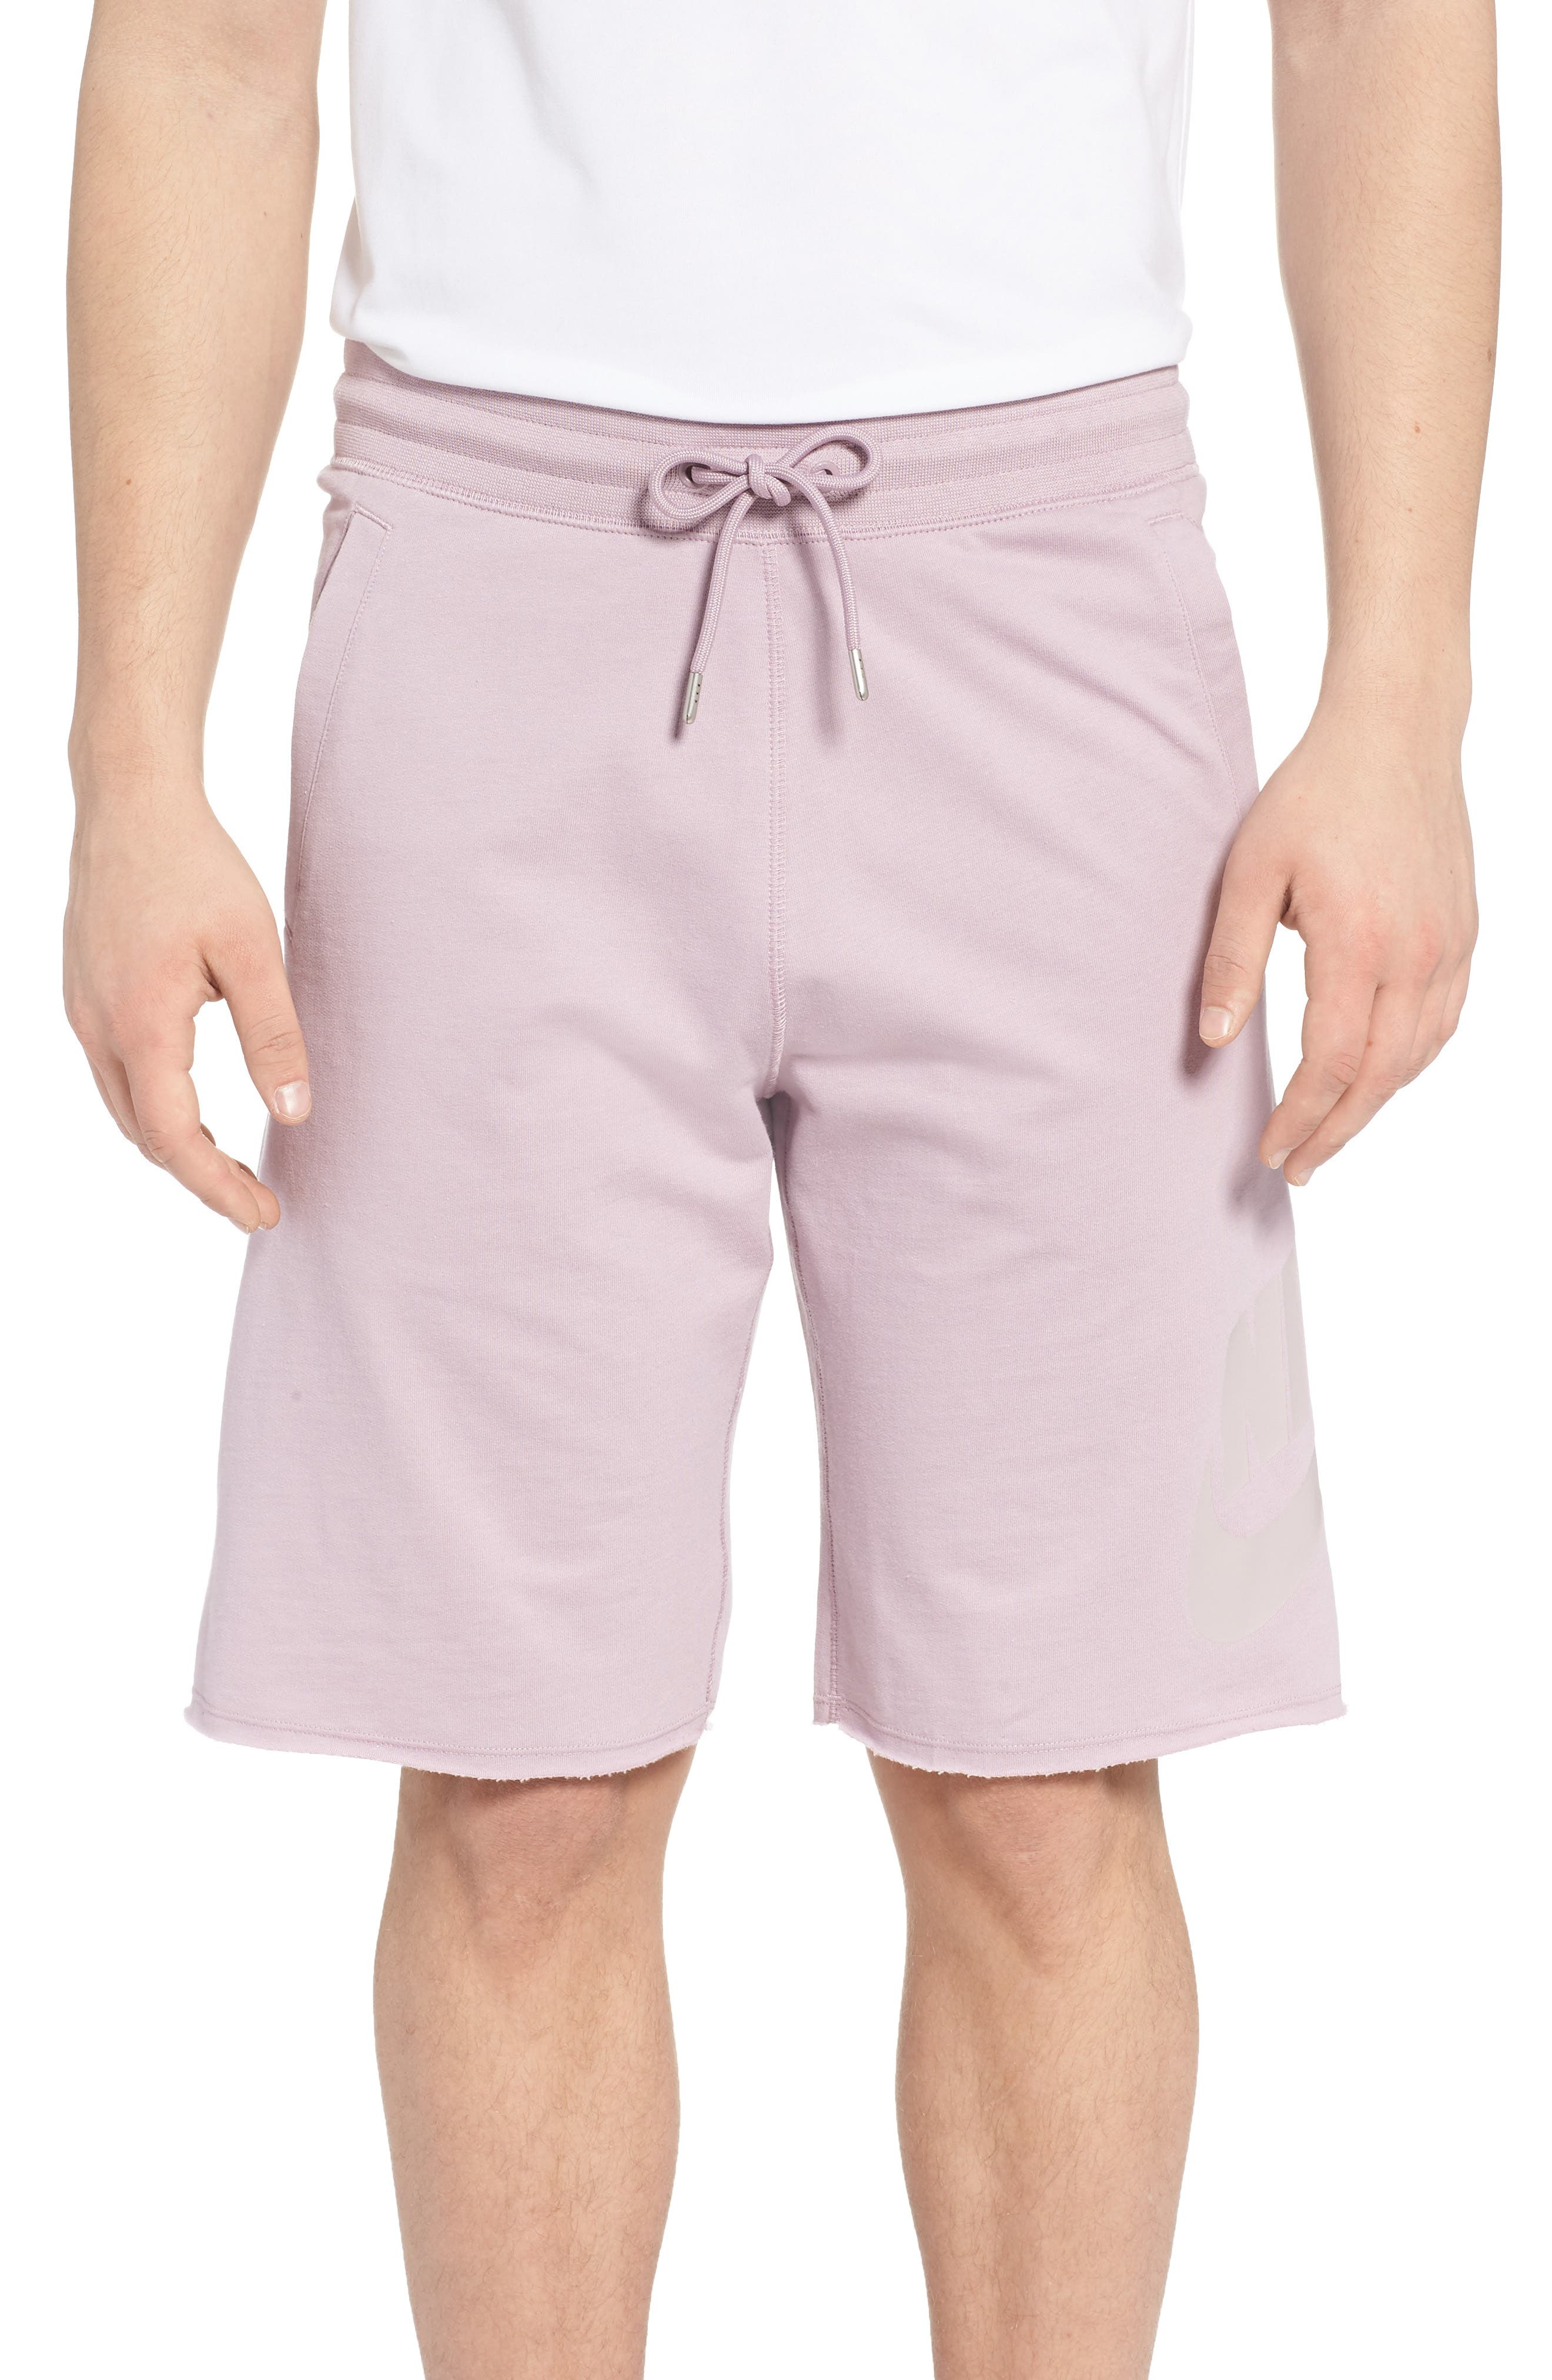 'NSW' Logo French Terry Shorts, Main, color, 694